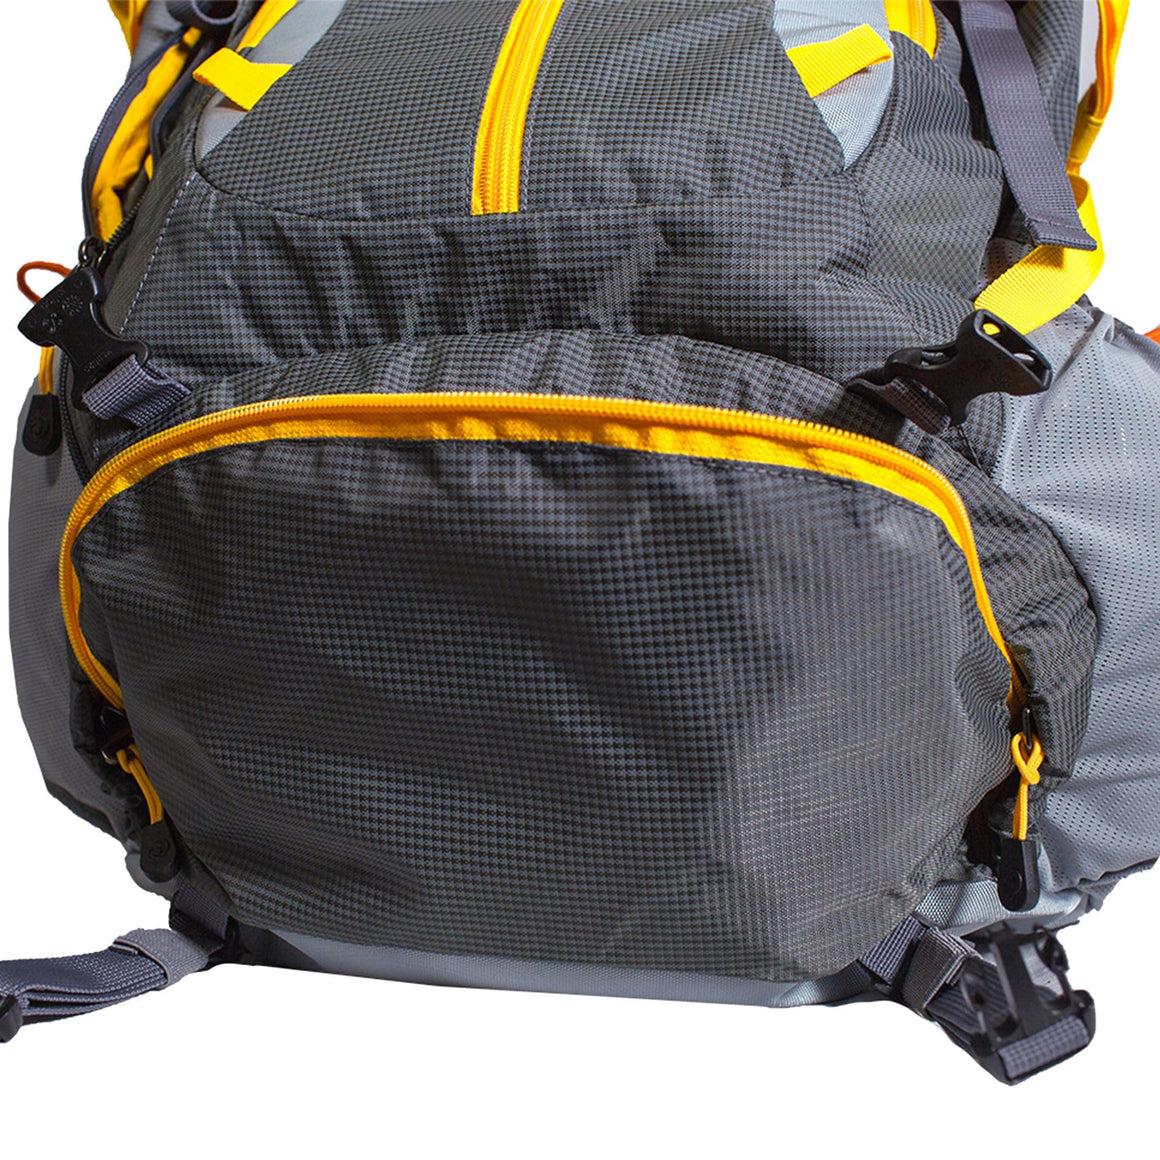 Front of the 45L Hiking Backpack in Yellow and Grey